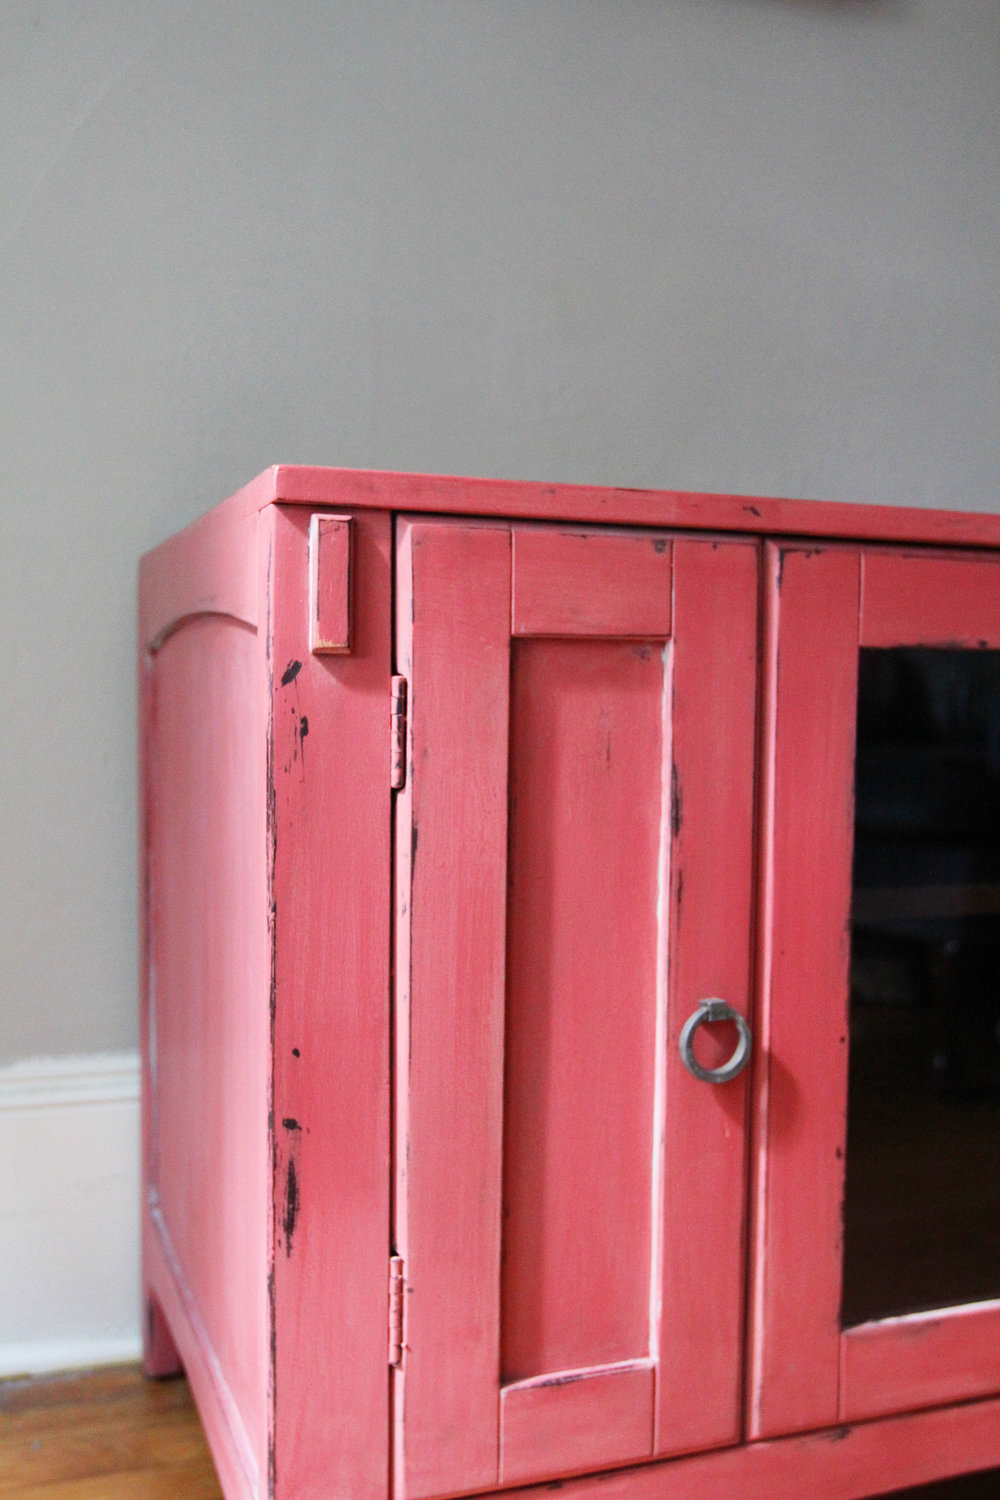 jo-torrijos-a-simpler-design-annie-sloan-chalk-paint-burgundy-arles-english-yellow-coral-atlanta-painted-furniture-6.jpg